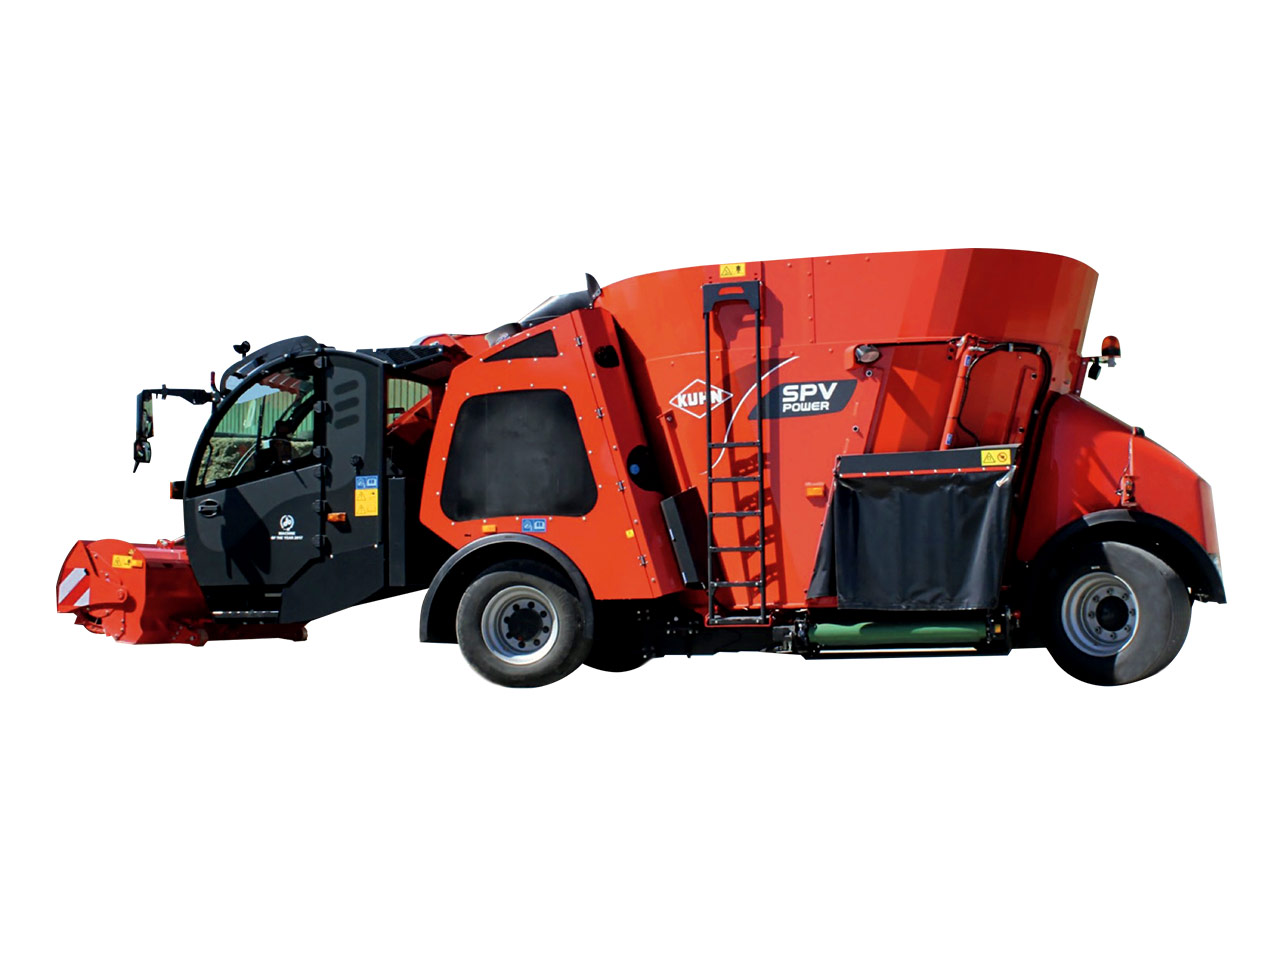 Kuhn SPV SPV Power 17.1 DL